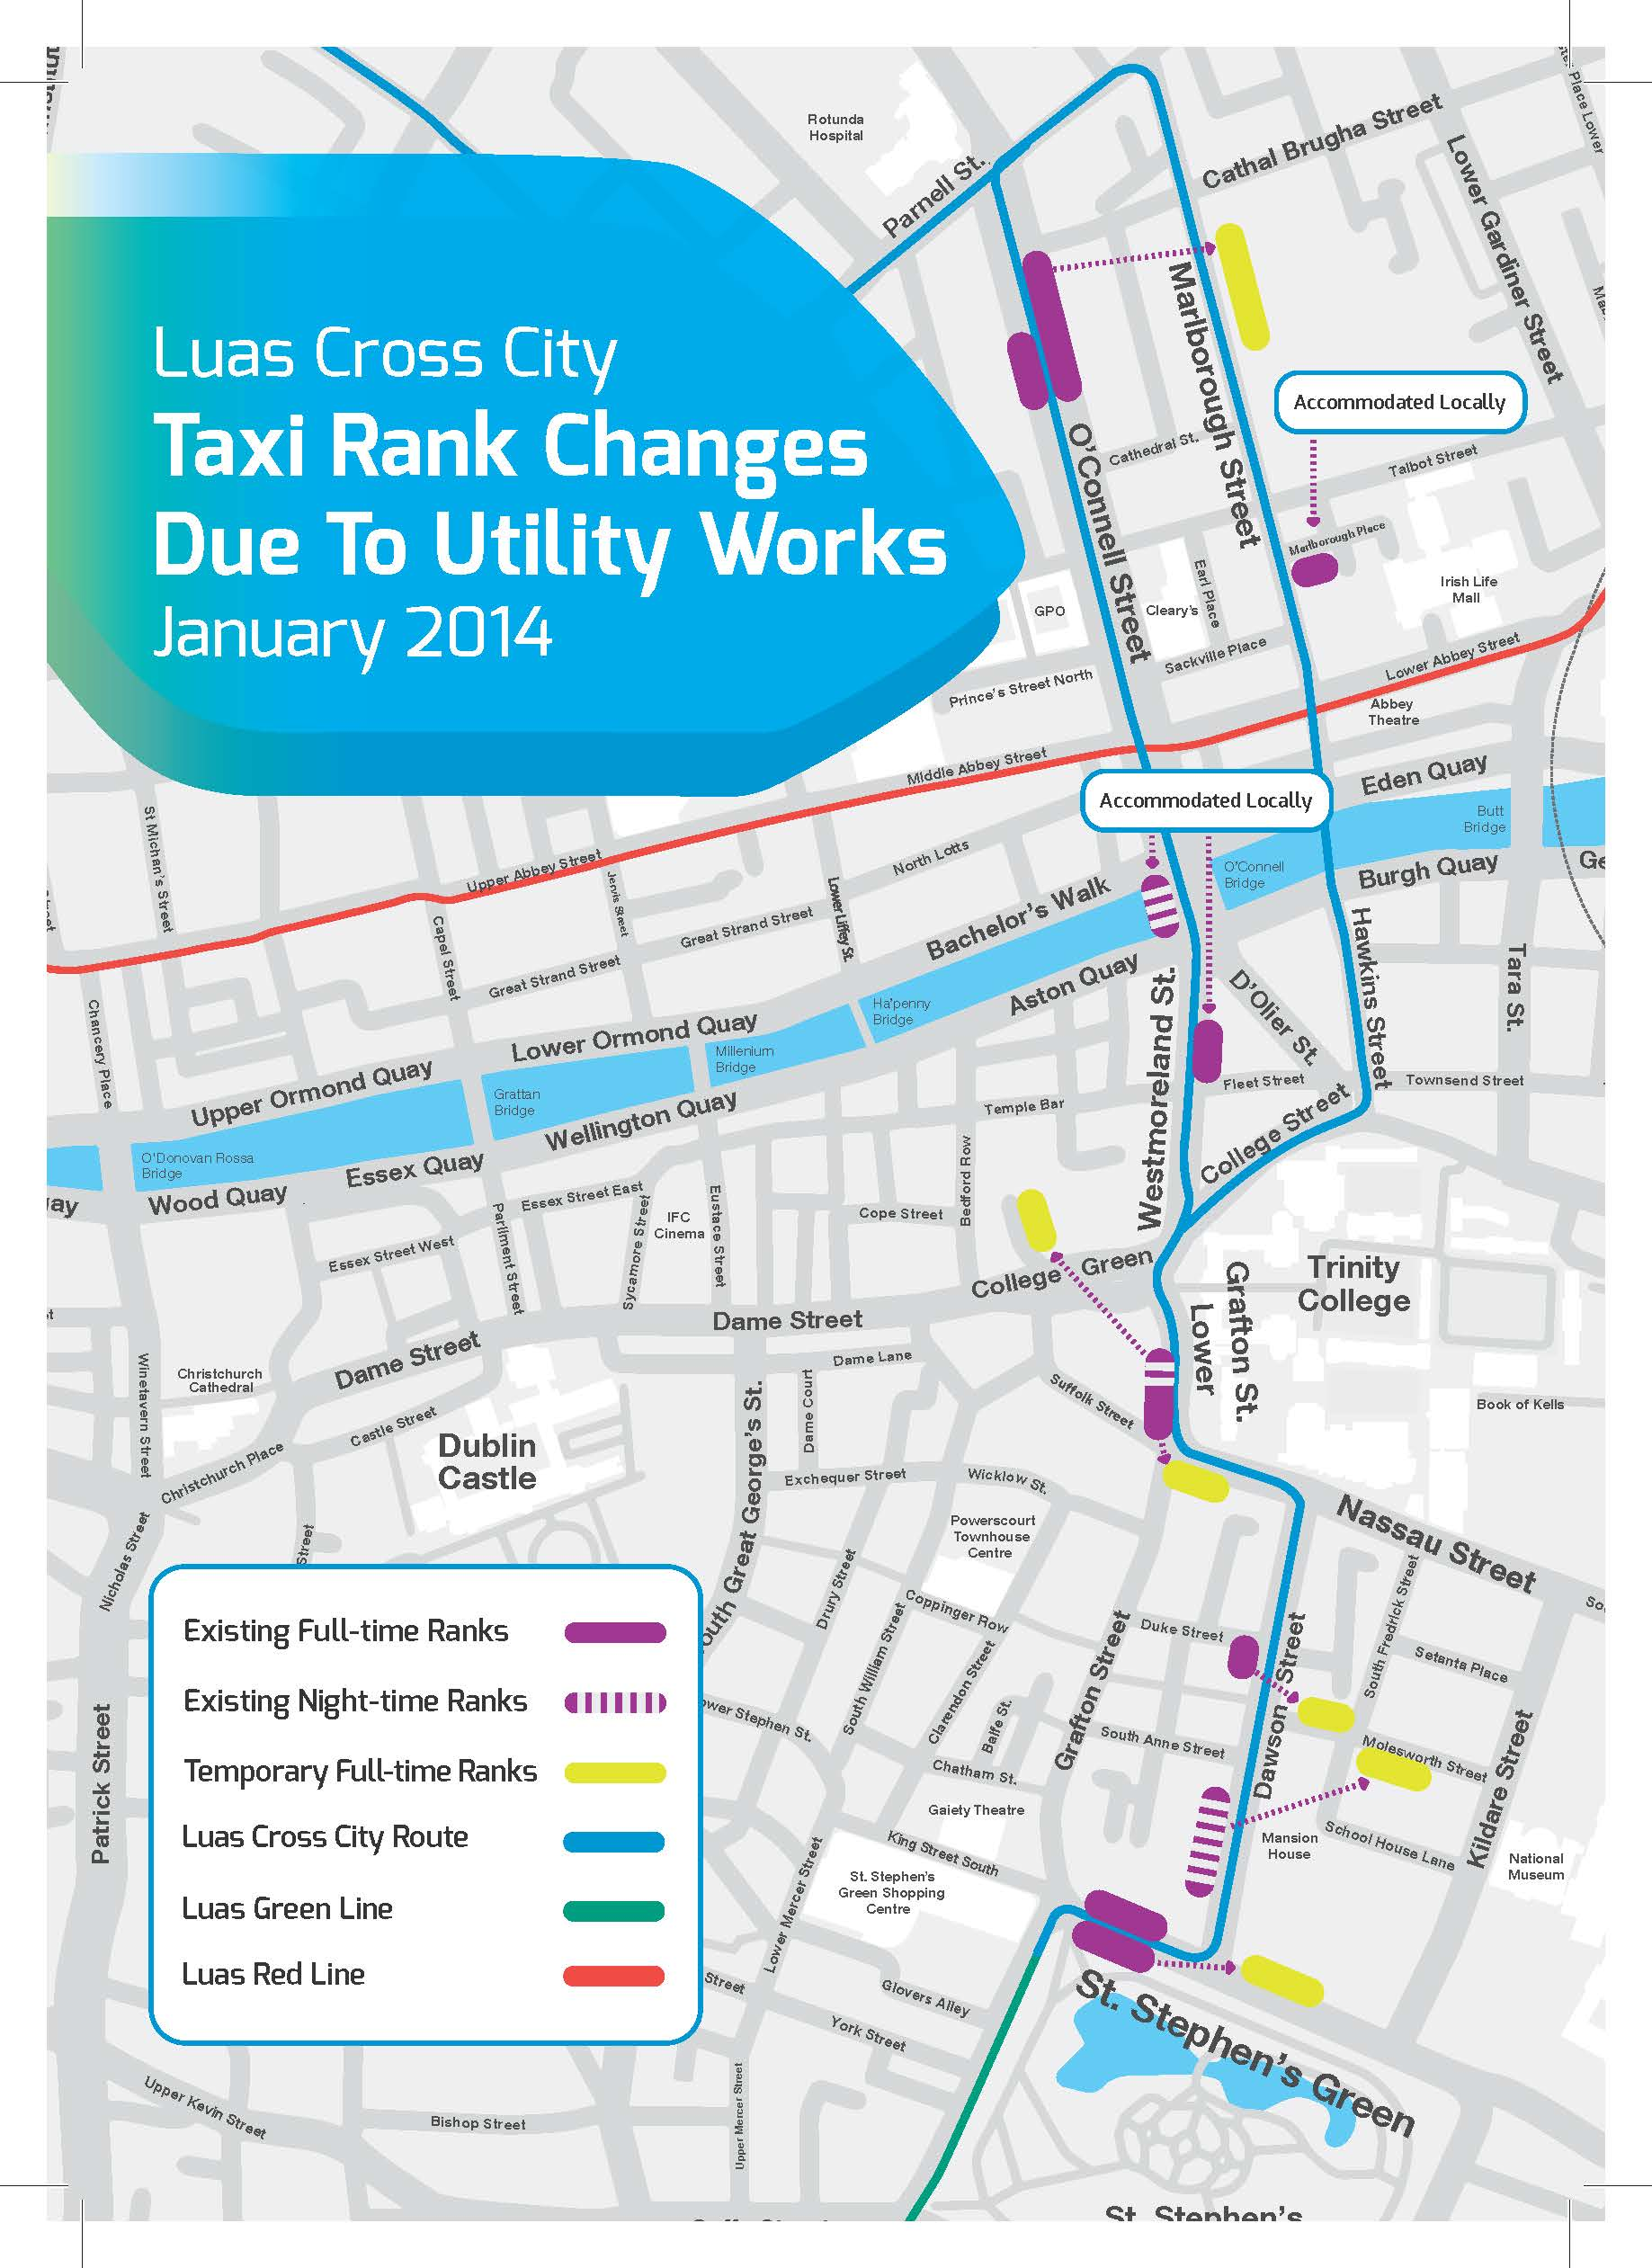 luas cross city taxi rank changes map. luas cross city works  dublin  national transport